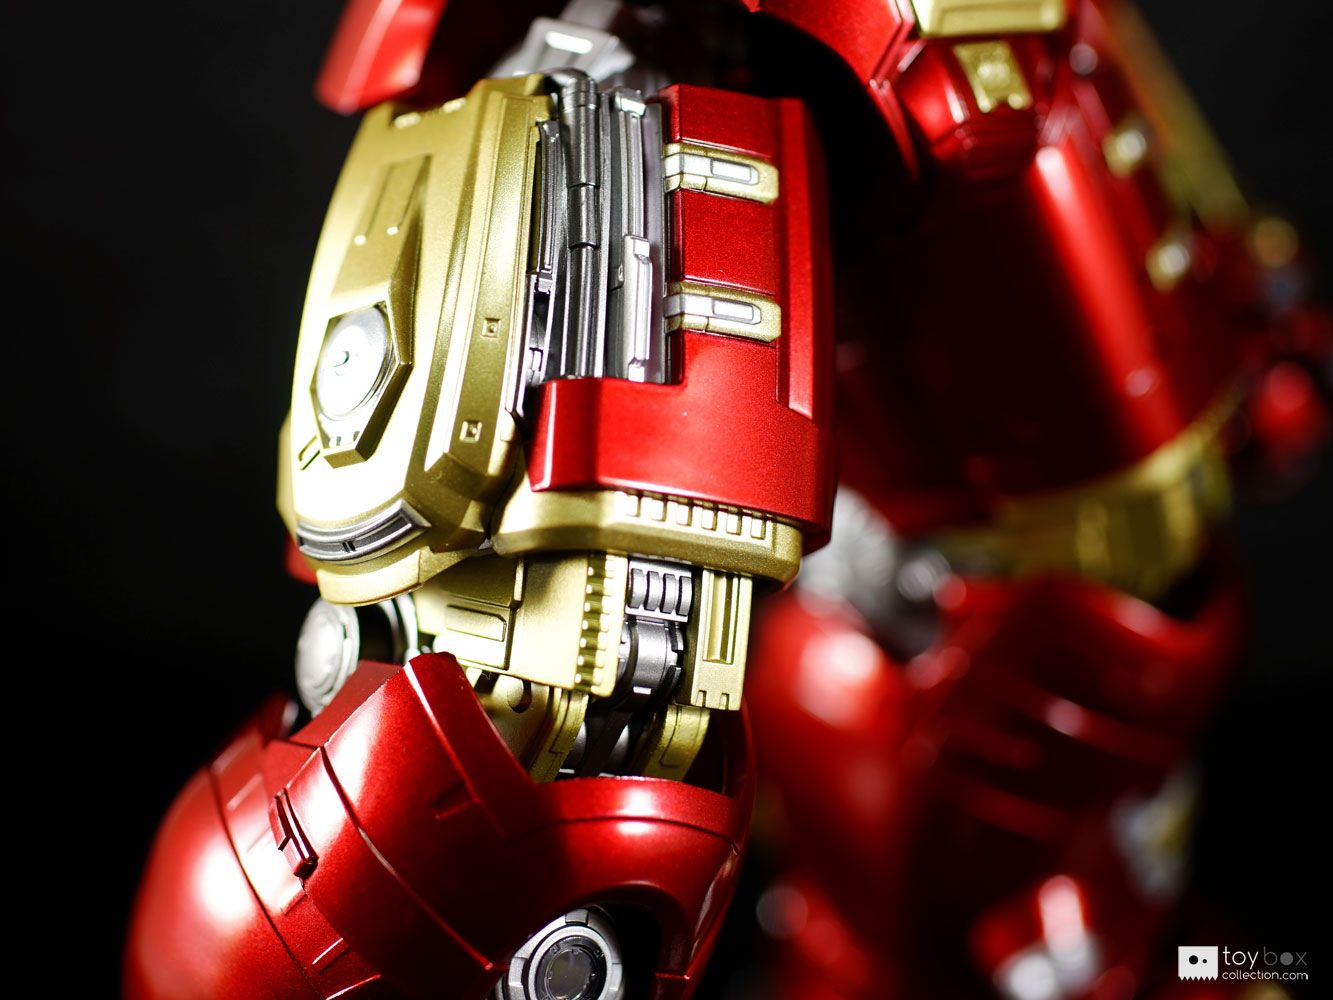 Chogokin x S.H.Figuarts Iron Man MK44 Hulkbuster Review | Toyboxcollection